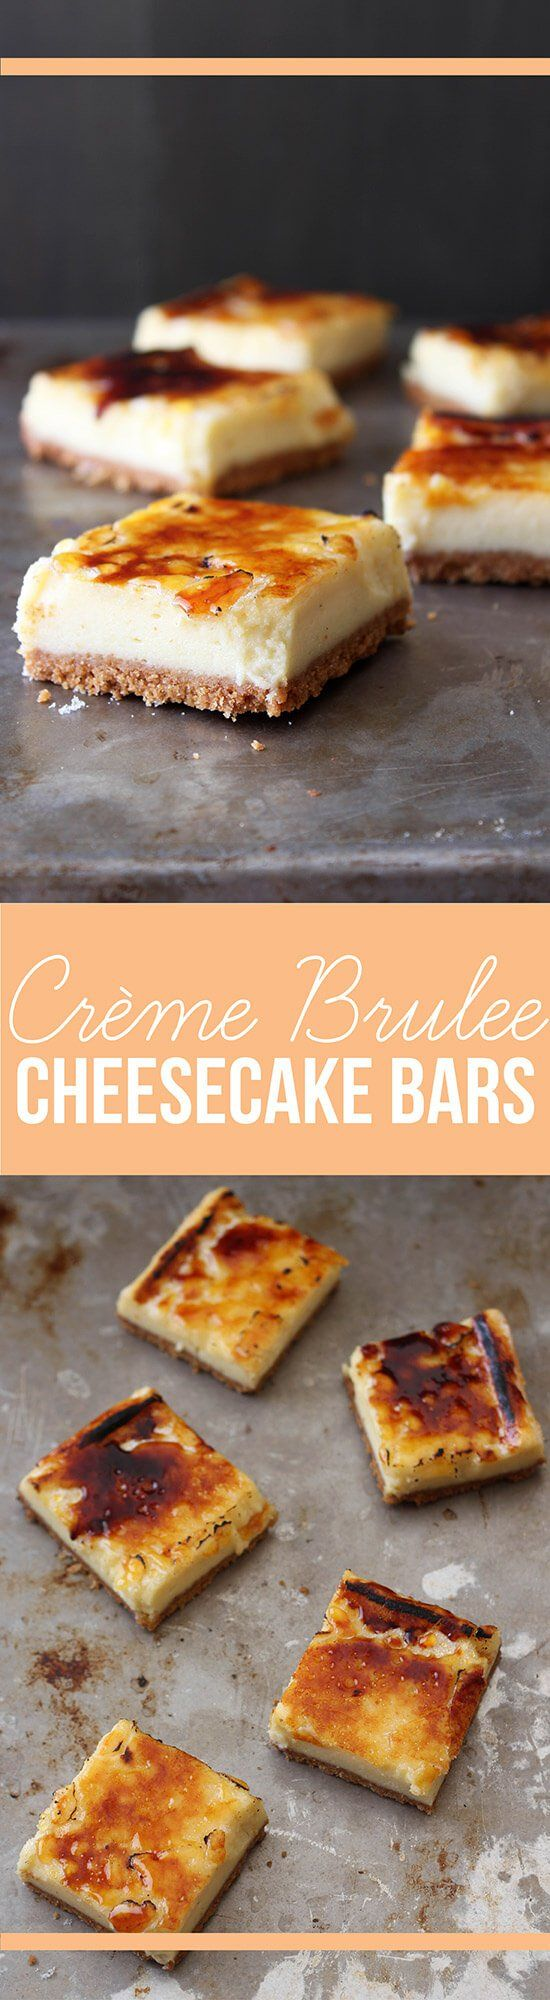 Creme Brulee Cheesecake Bars are a delicious twist on the classic French dessert!